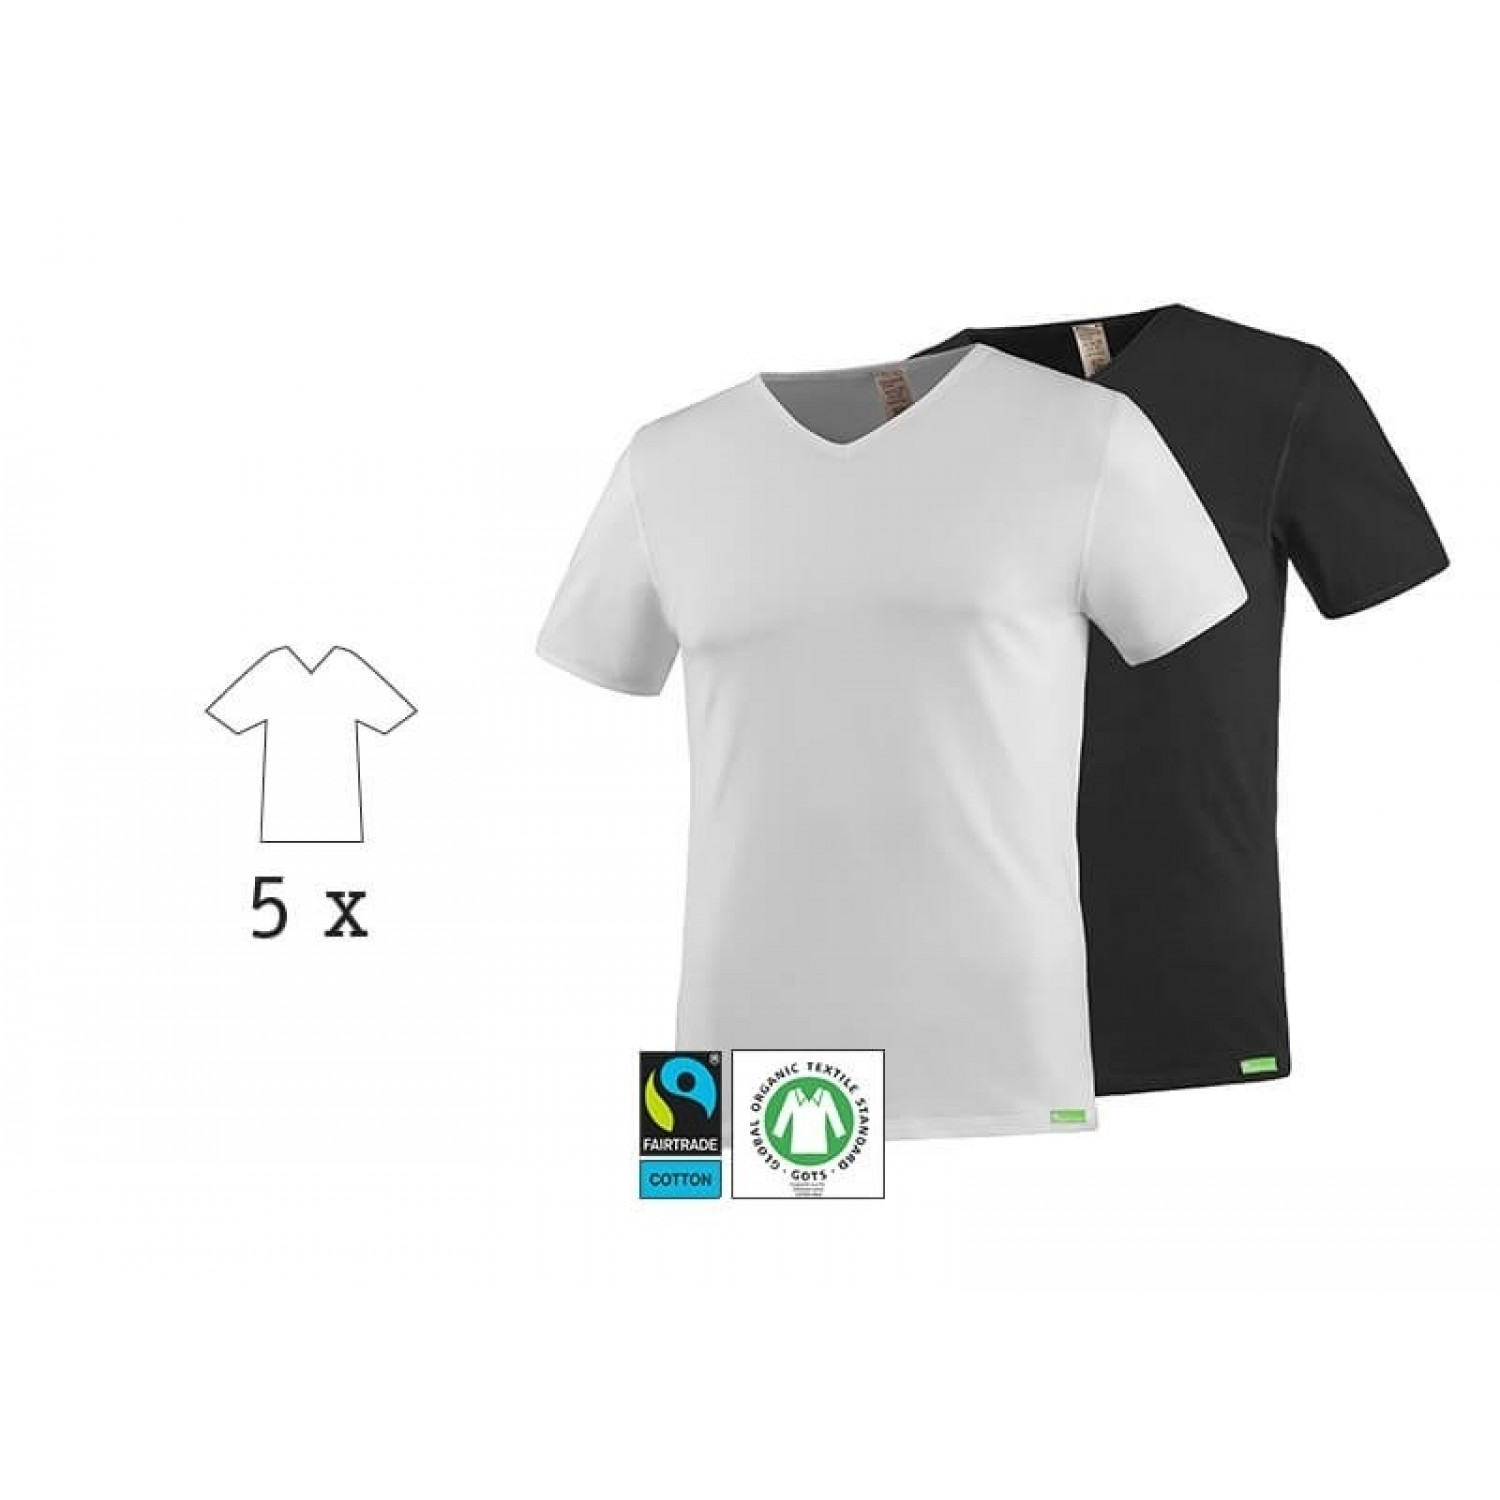 SoulShirt 5 x V-Neck T-Shirt, fair organic cotton | kleiderhelden